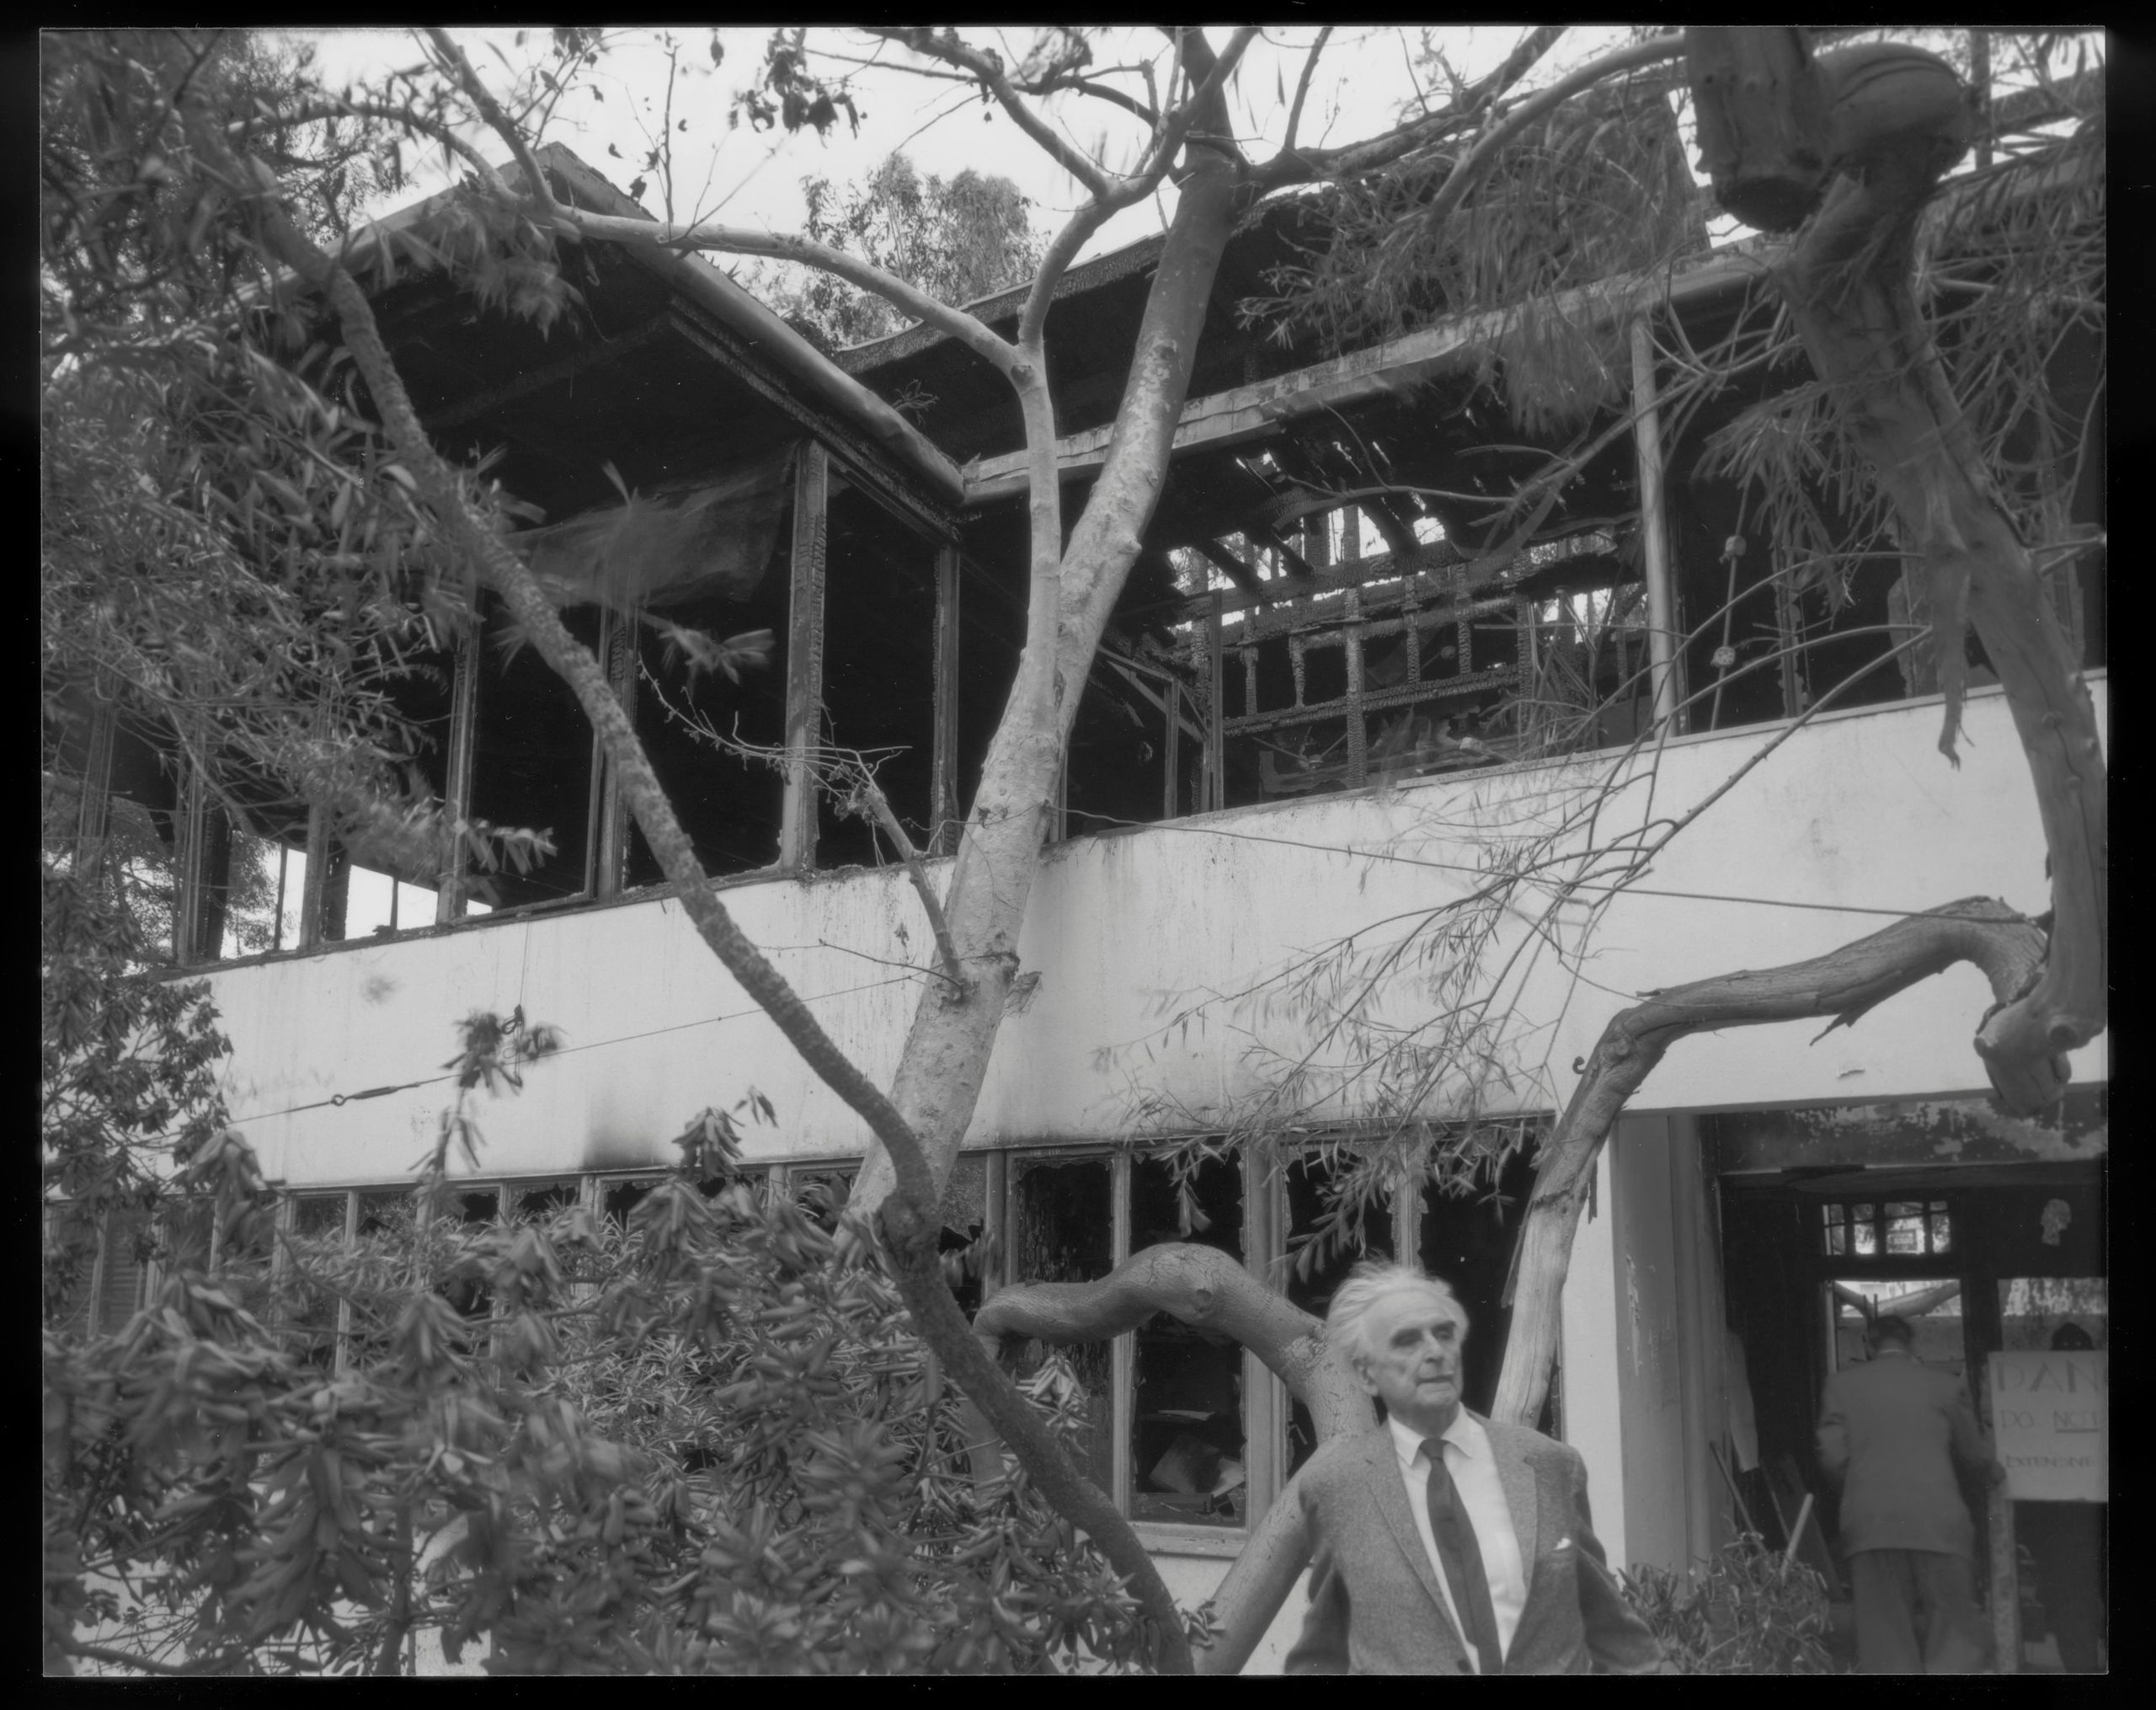 Richard Neutra standing outside his cherished home shortly after the 1963 fire.